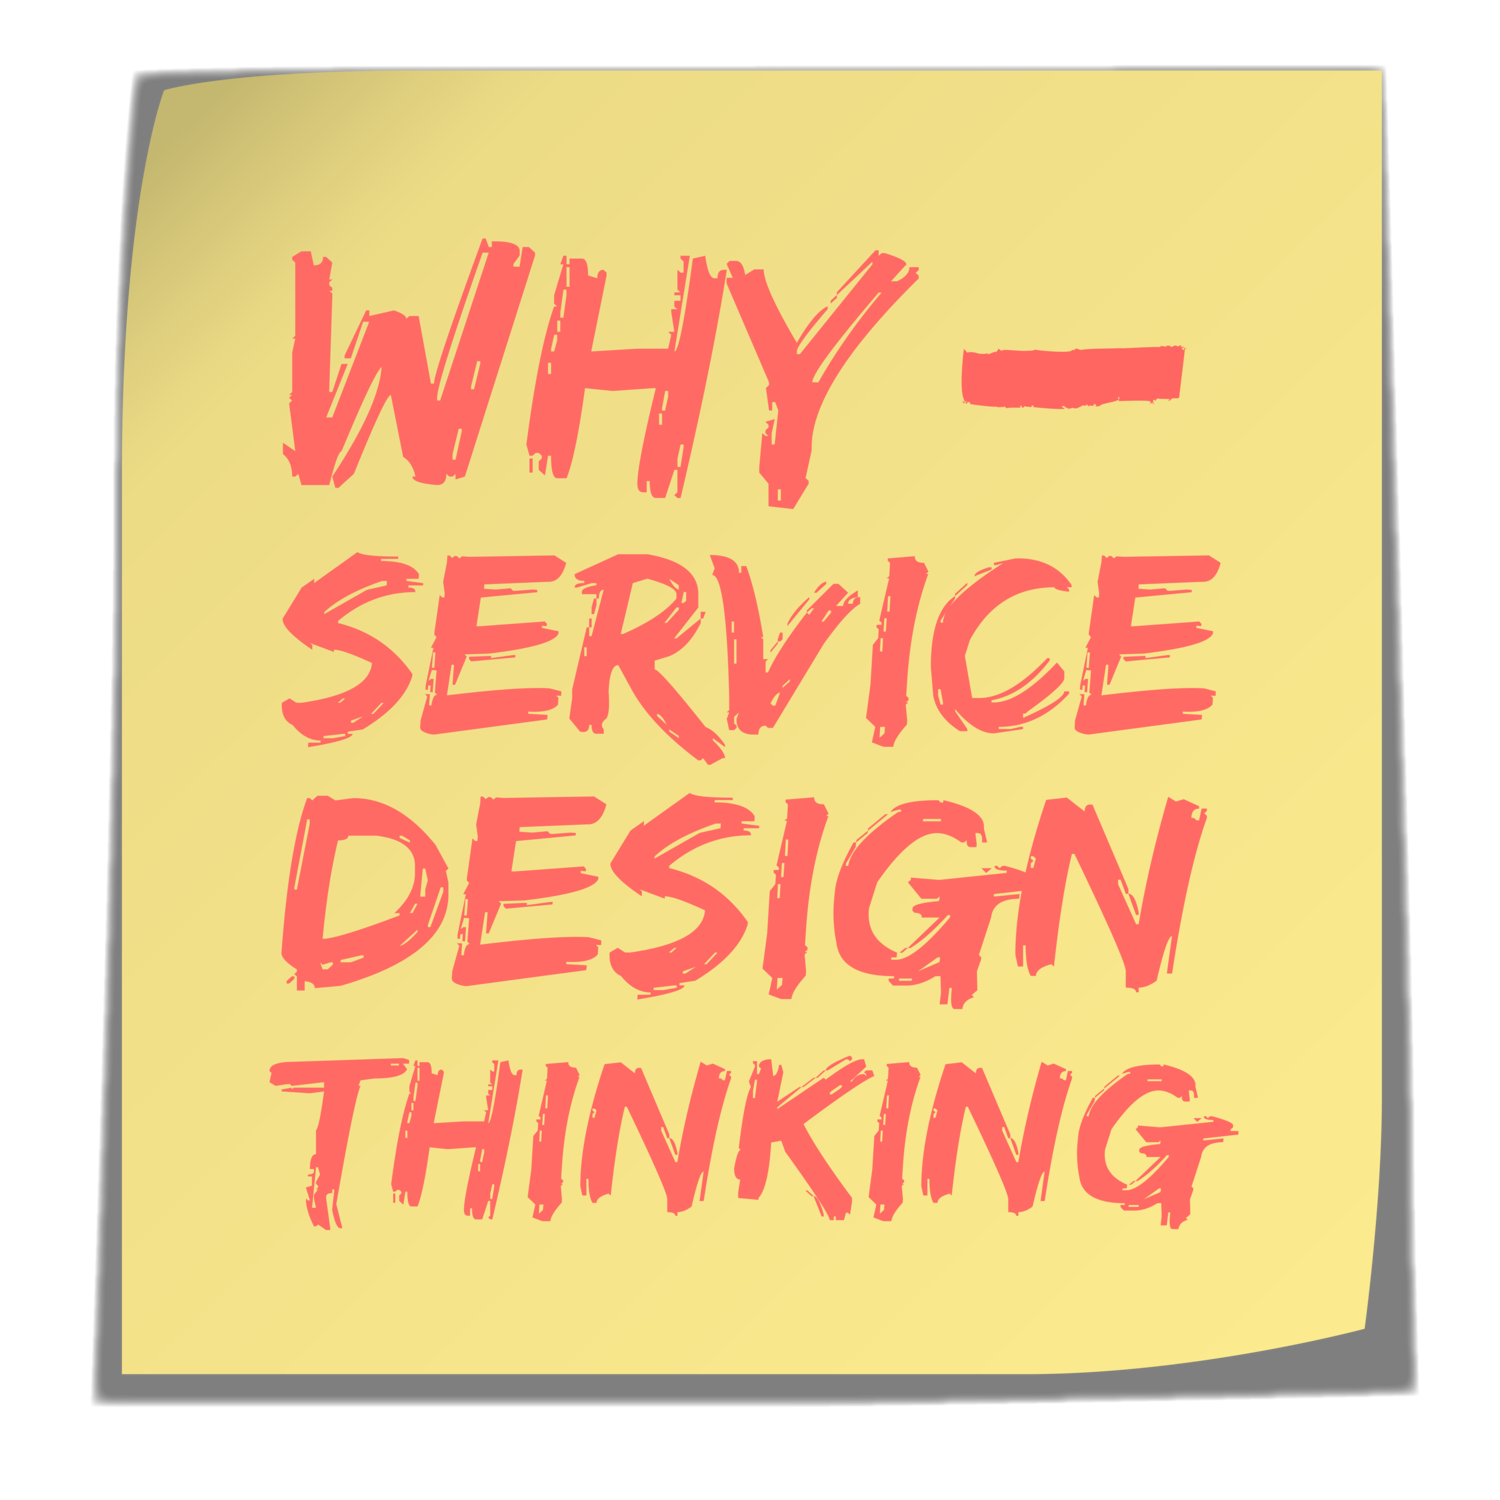 Seth Weissman: Research for Design Insights | #10 — Why Service